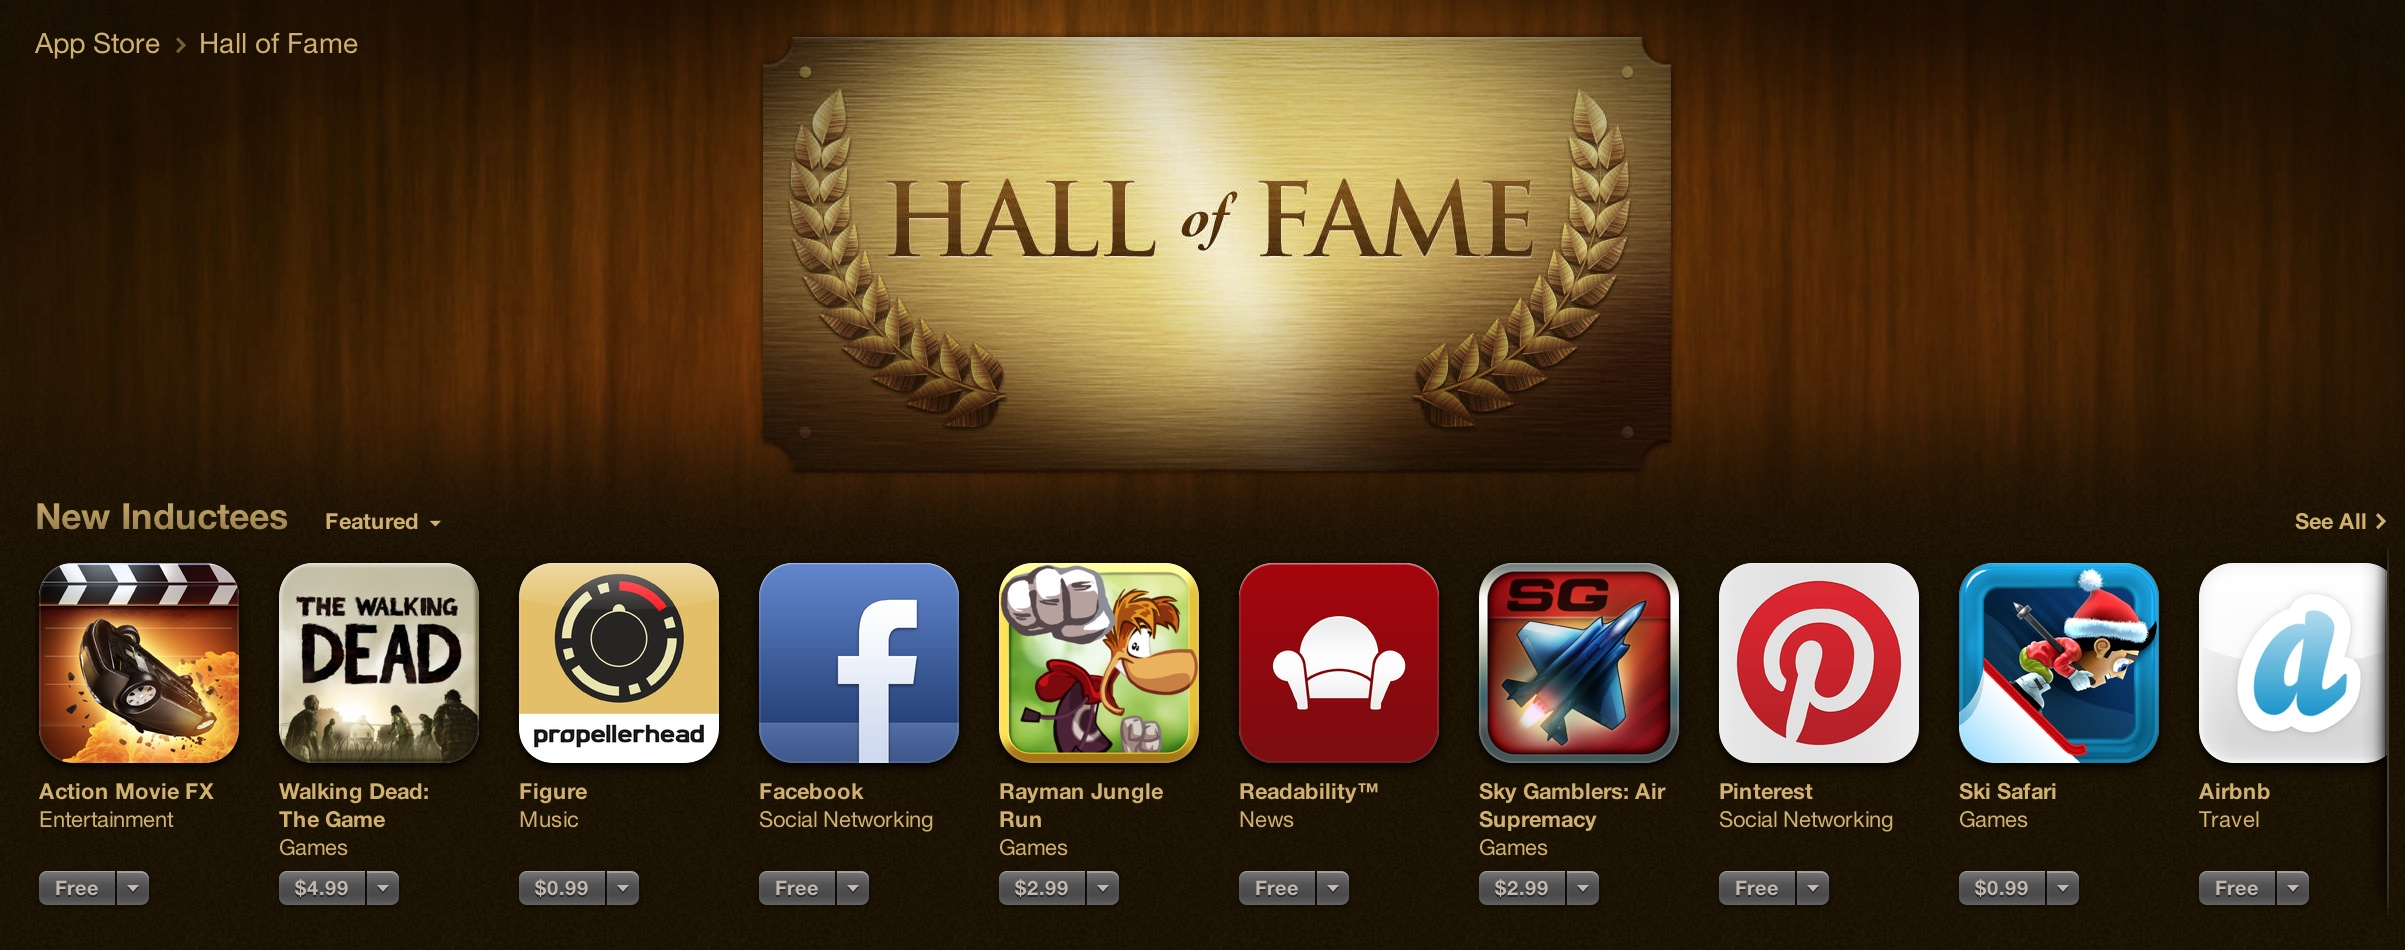 App-store-hall-of-fame